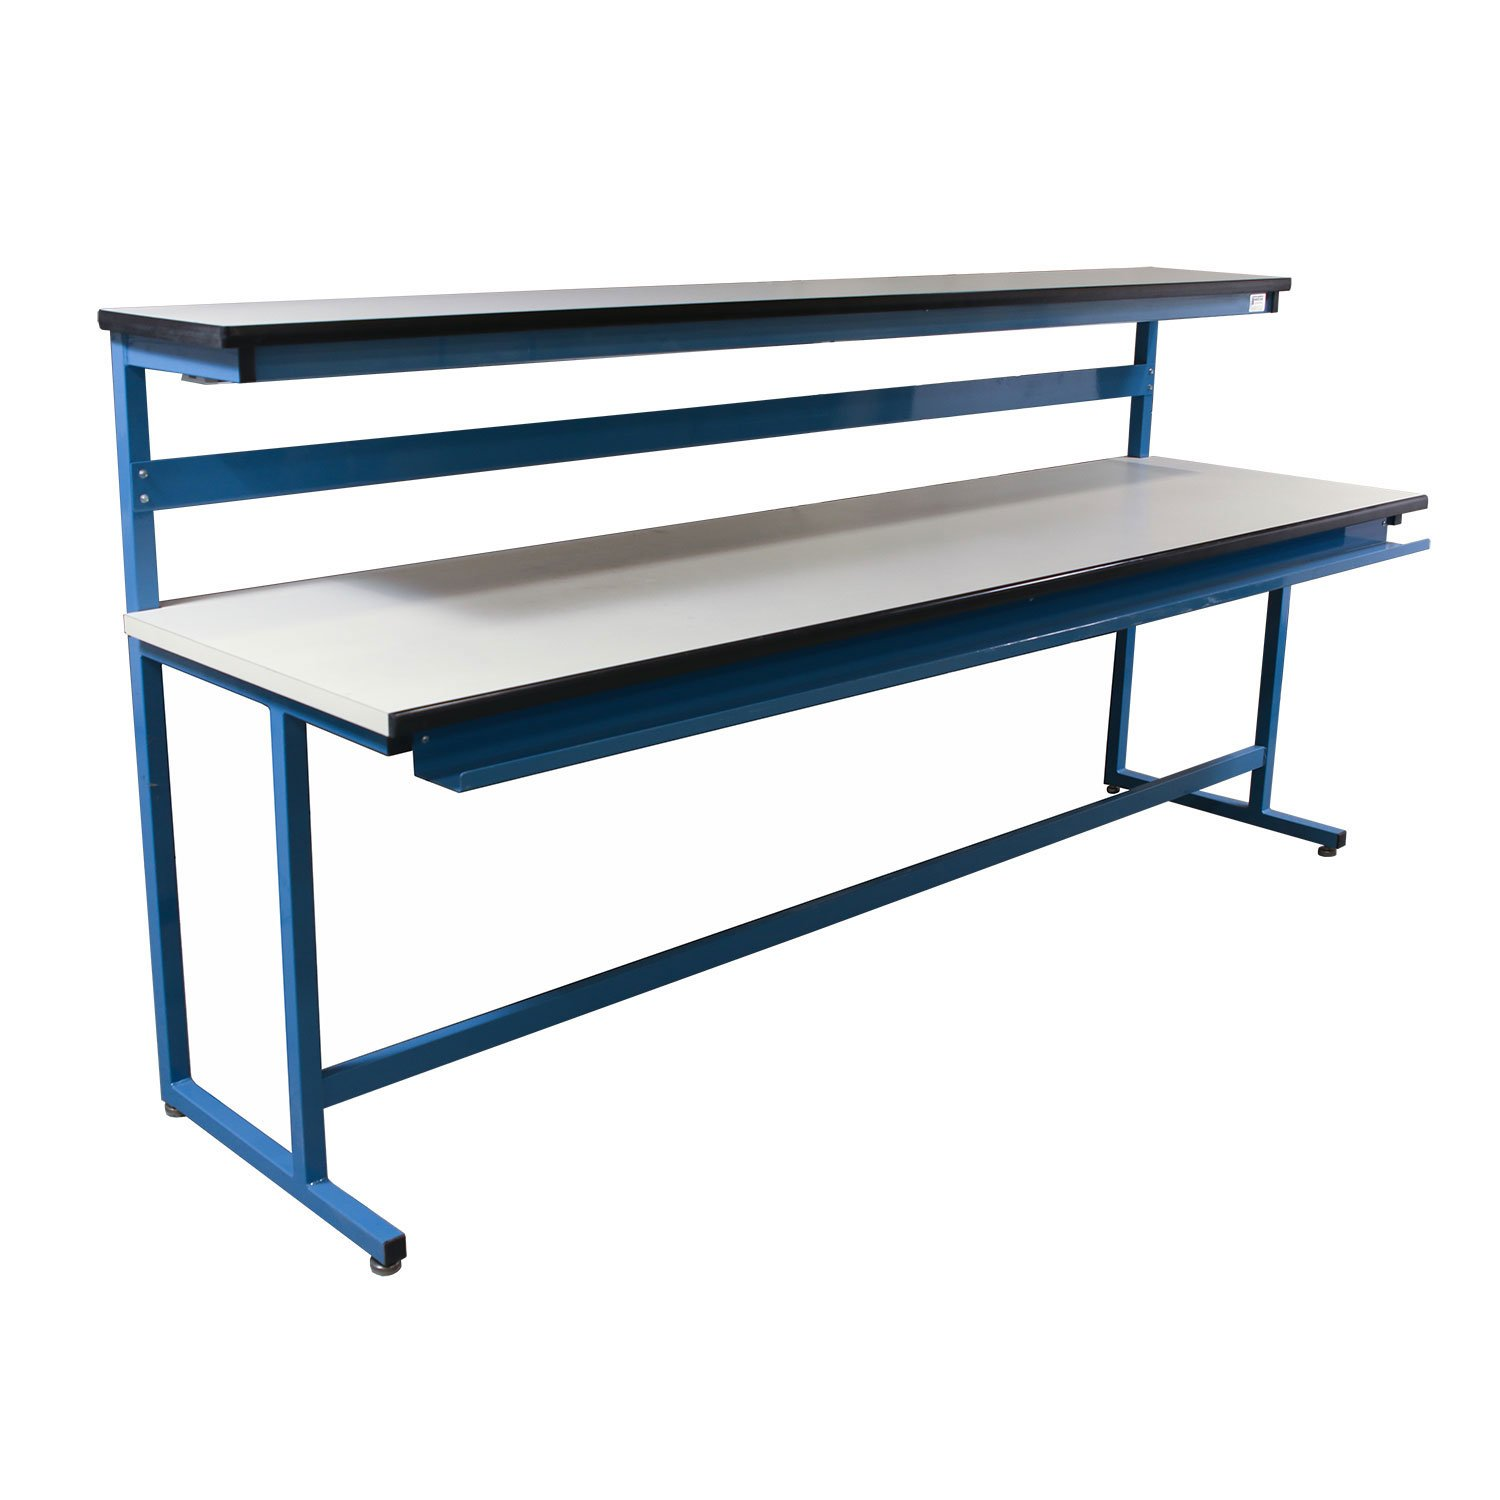 Used 30x108 Laminate Top Work Bench With Riser White